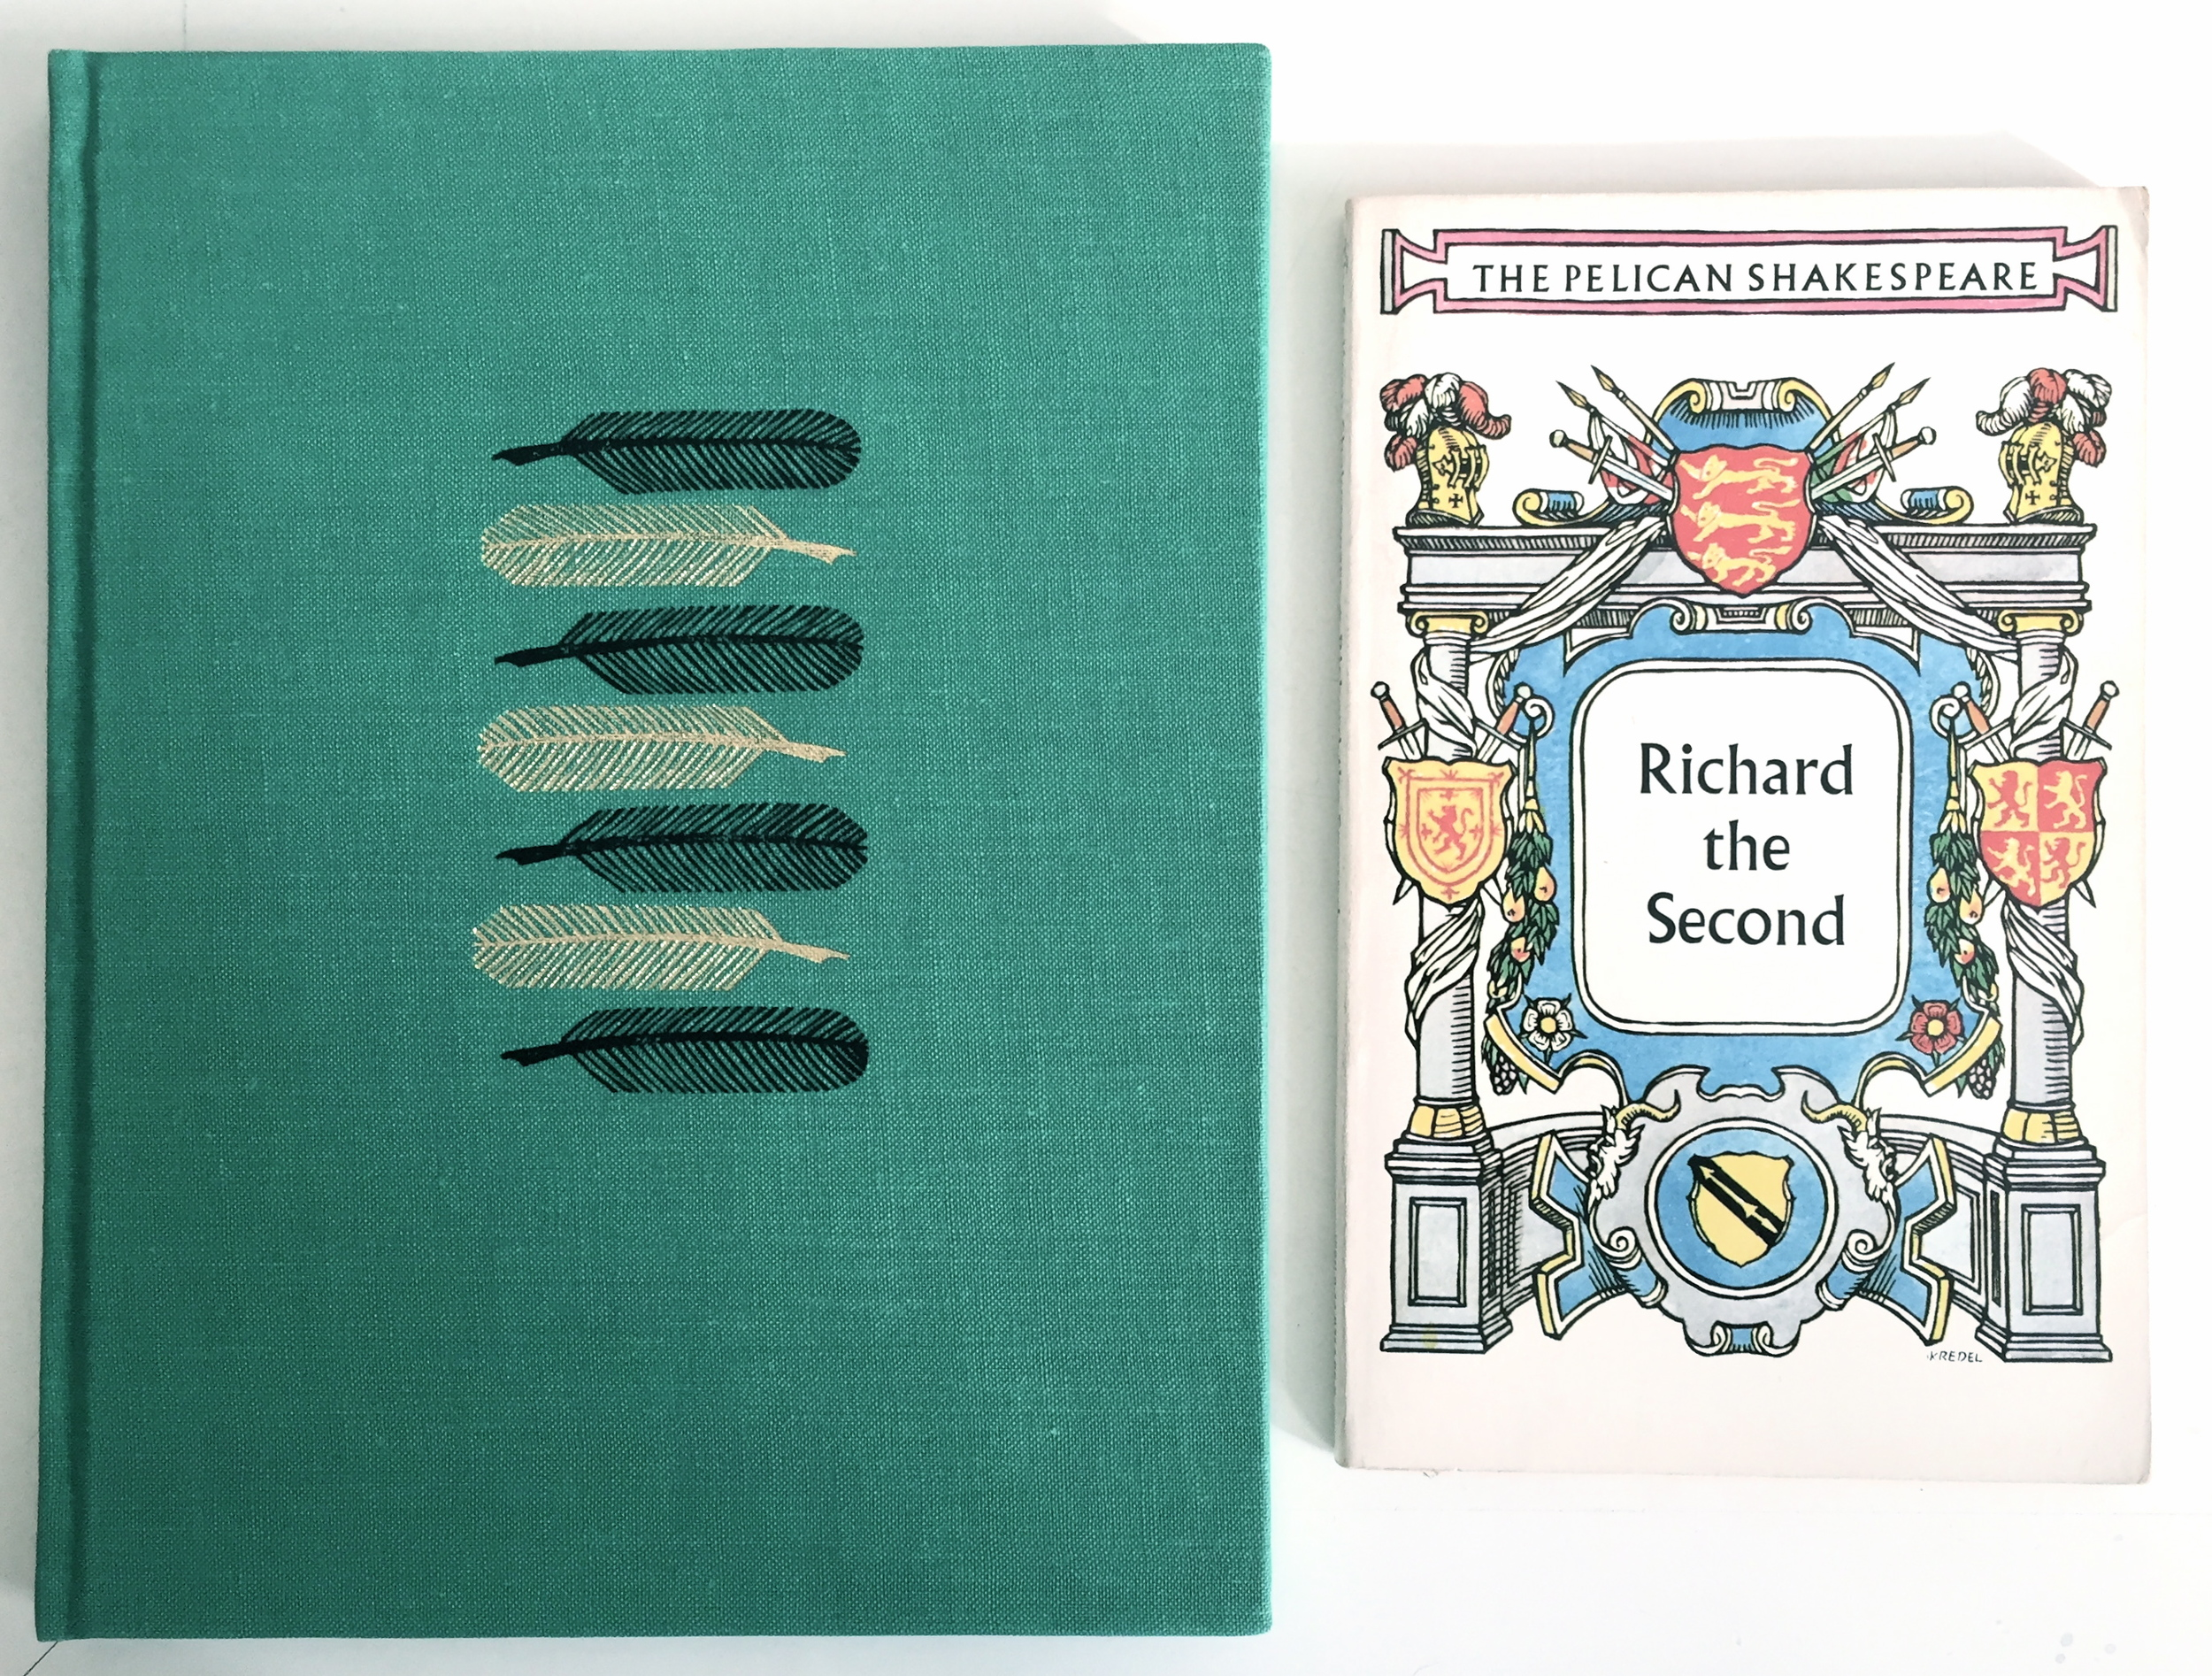 ADOPT US! LEFT:  A Midsummer Night's Dream  (Folio Society, 1957); RIGHT:  Richard II  (The Pelican Shakespeare, 1979)